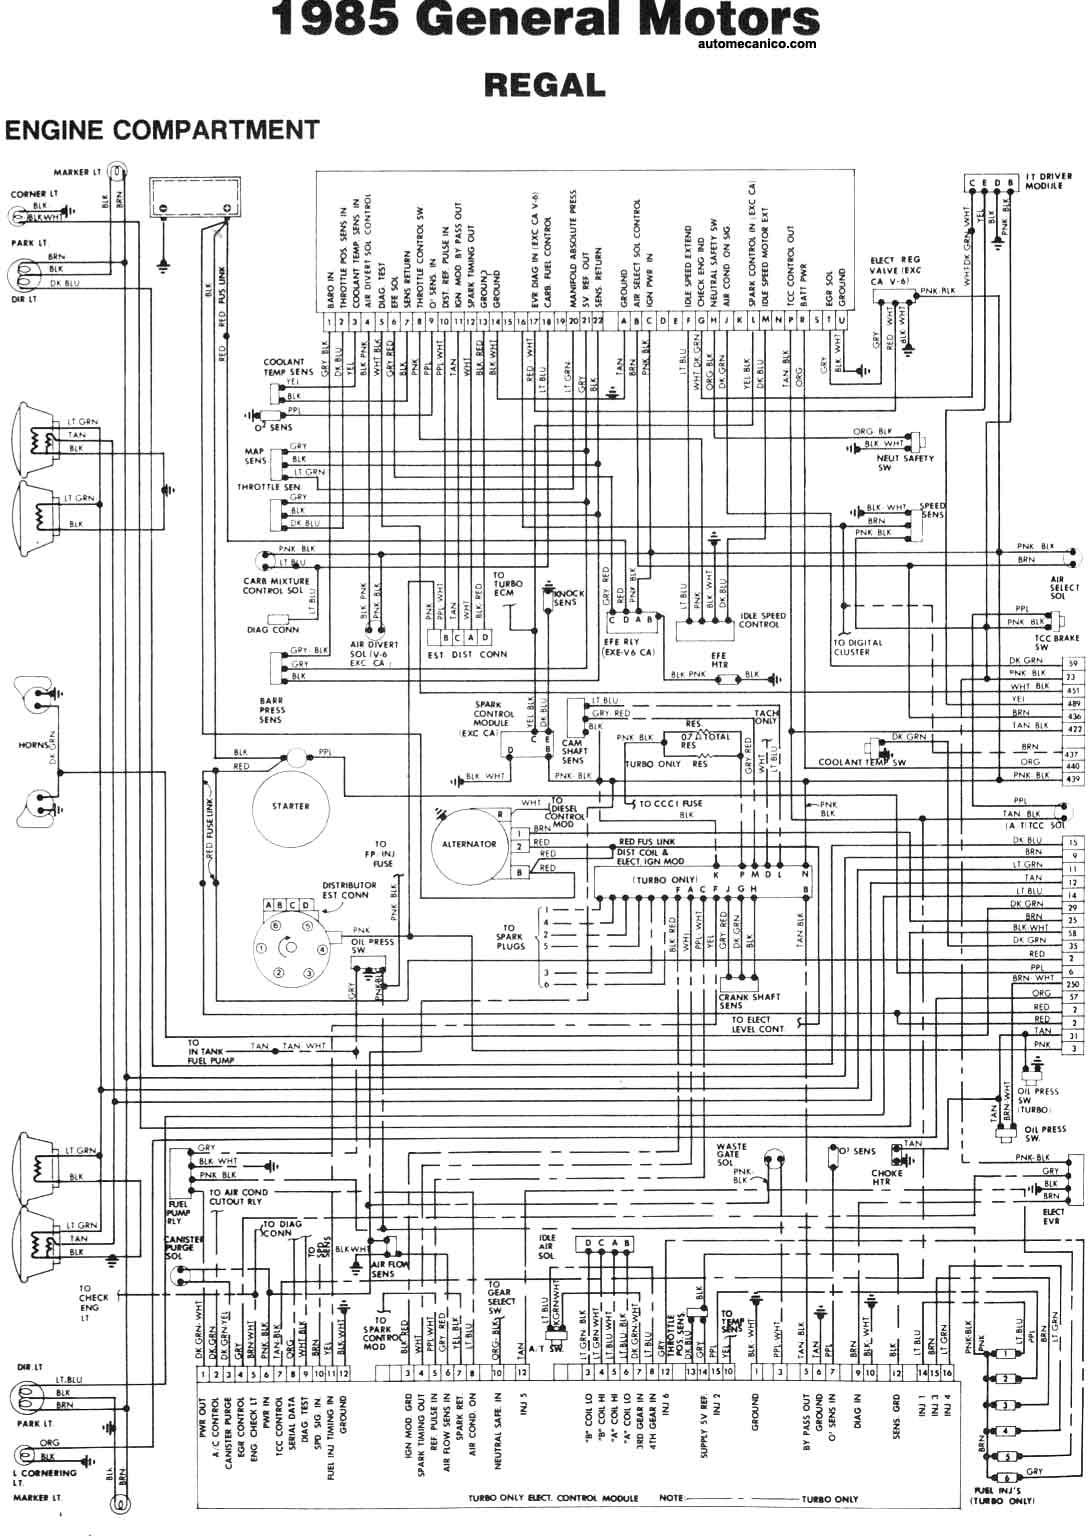 a wiring diagram for 1986 lebaron buick diagramas electricos 1985 esquemas  graphics  buick diagramas electricos 1985 esquemas  graphics